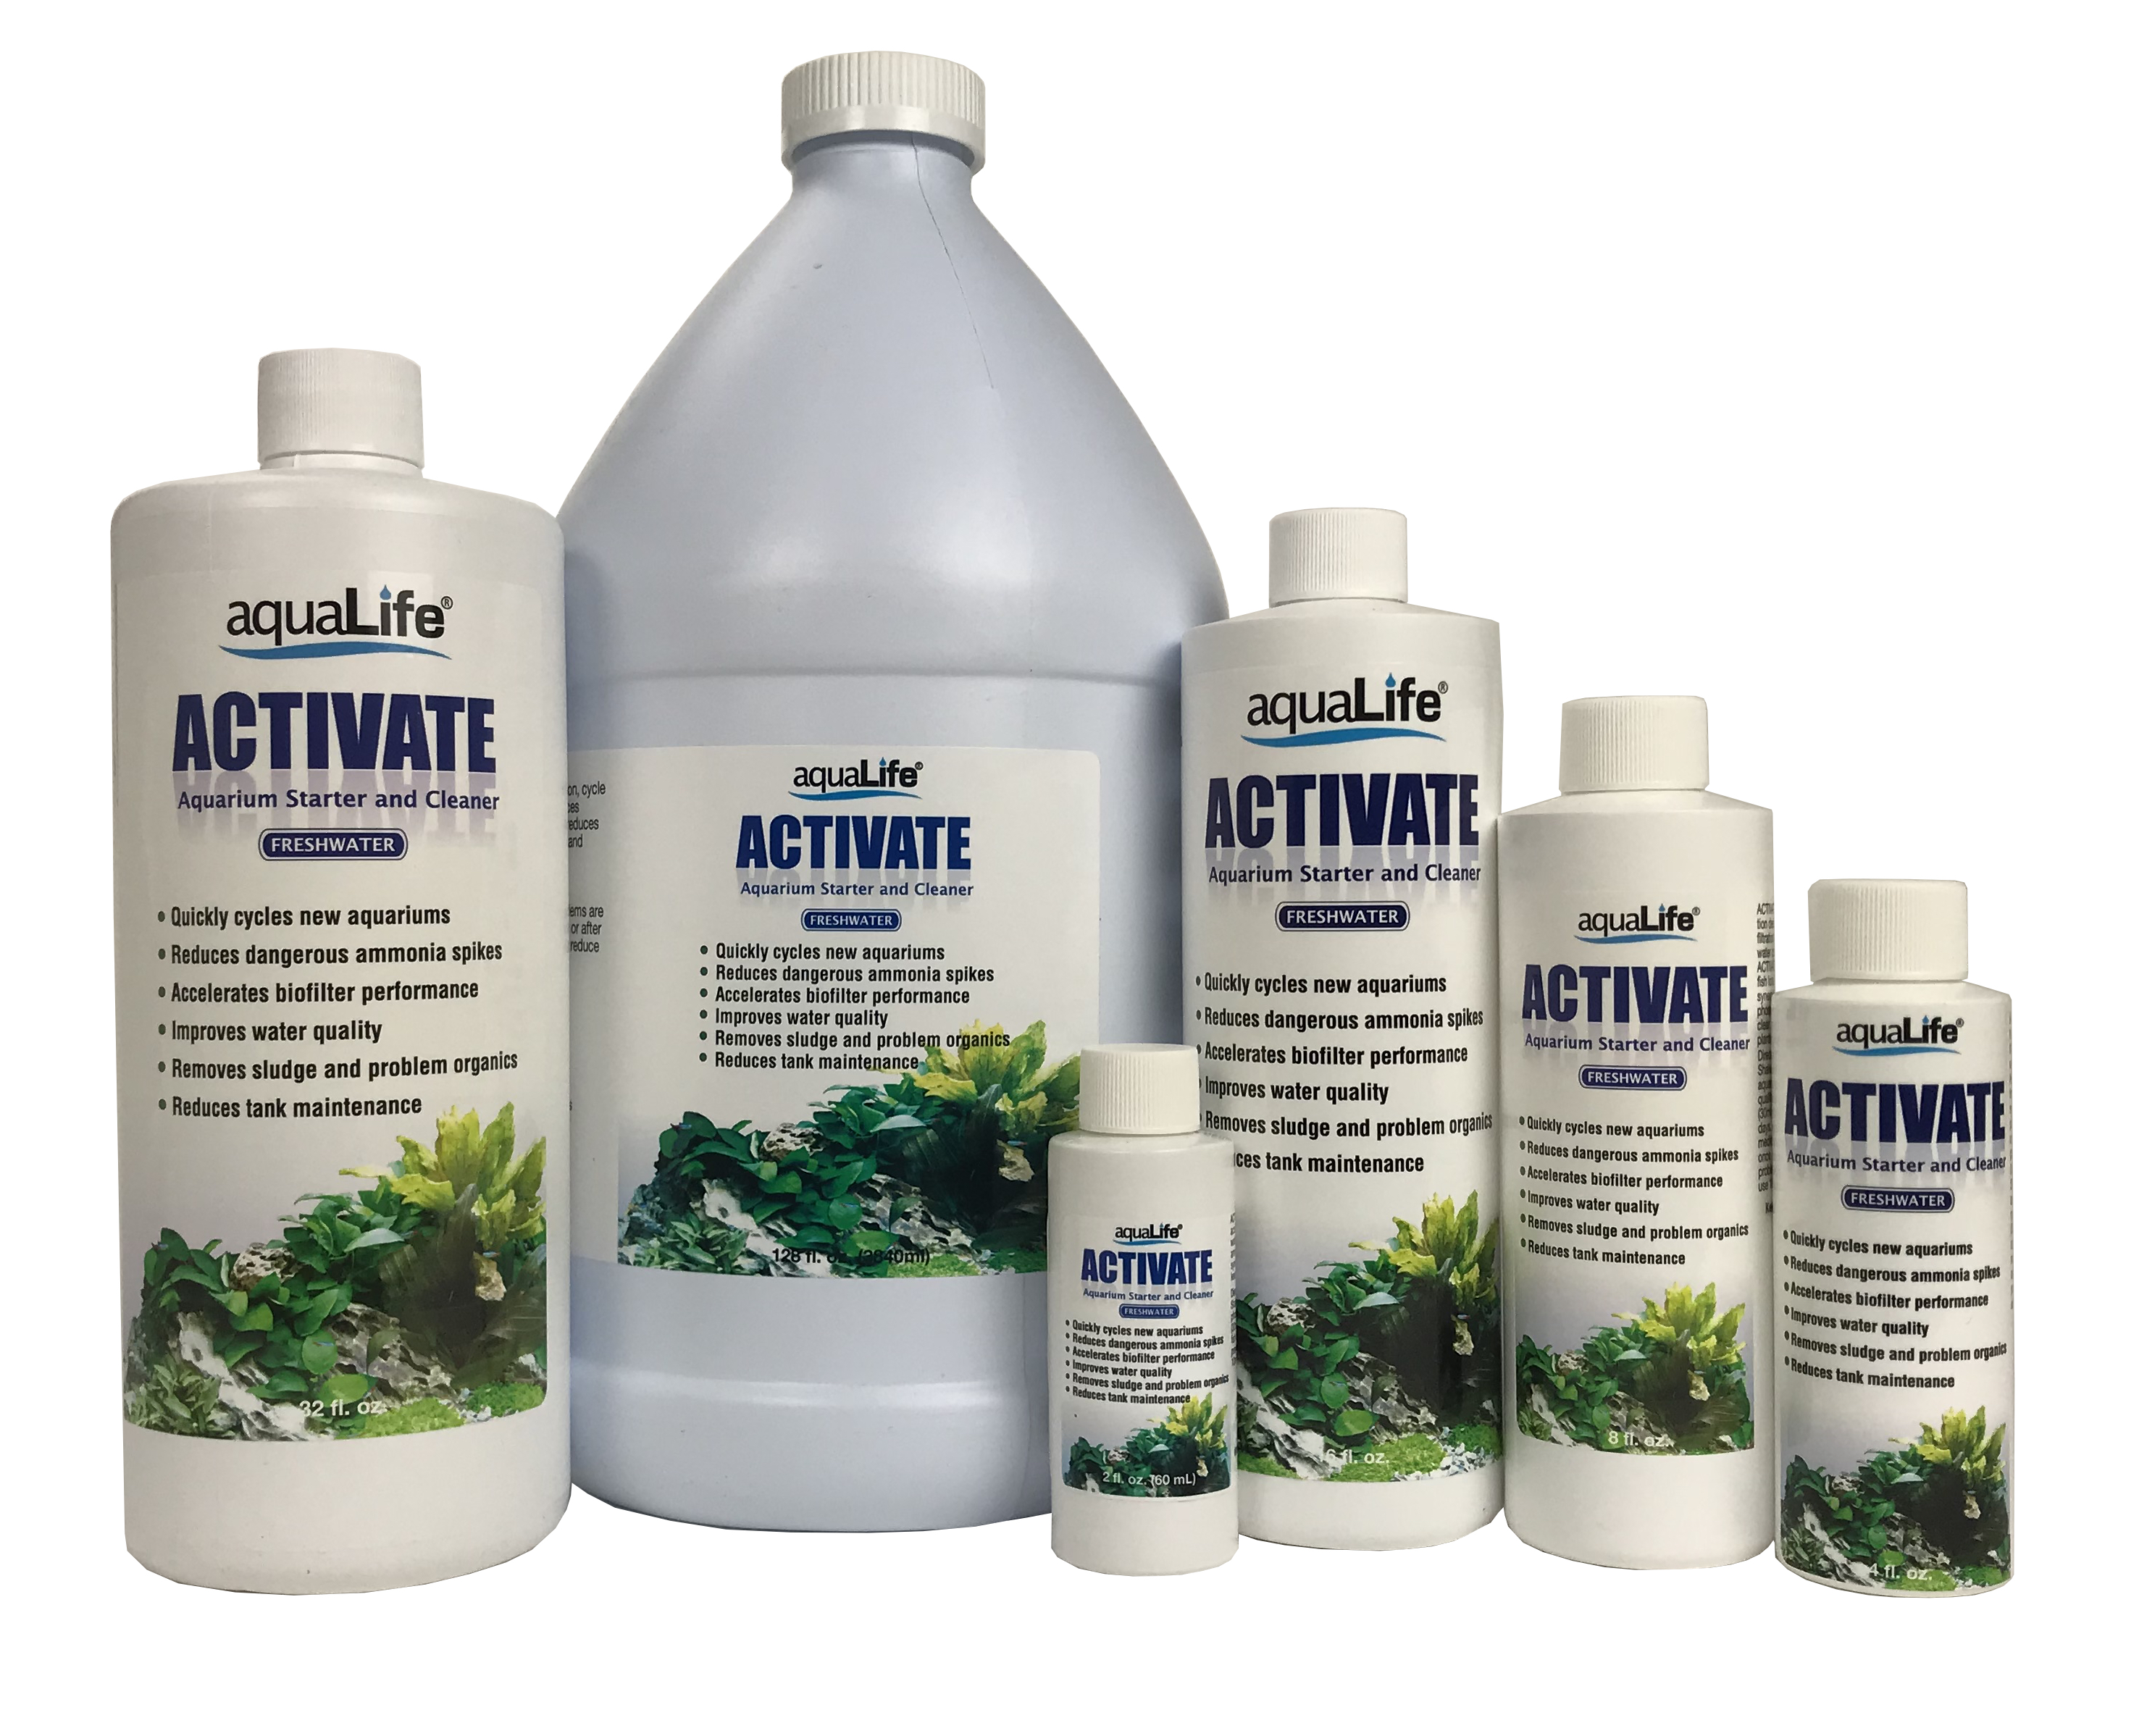 Activate Freshwater 2 oz Aquarium Starter and Cleaner